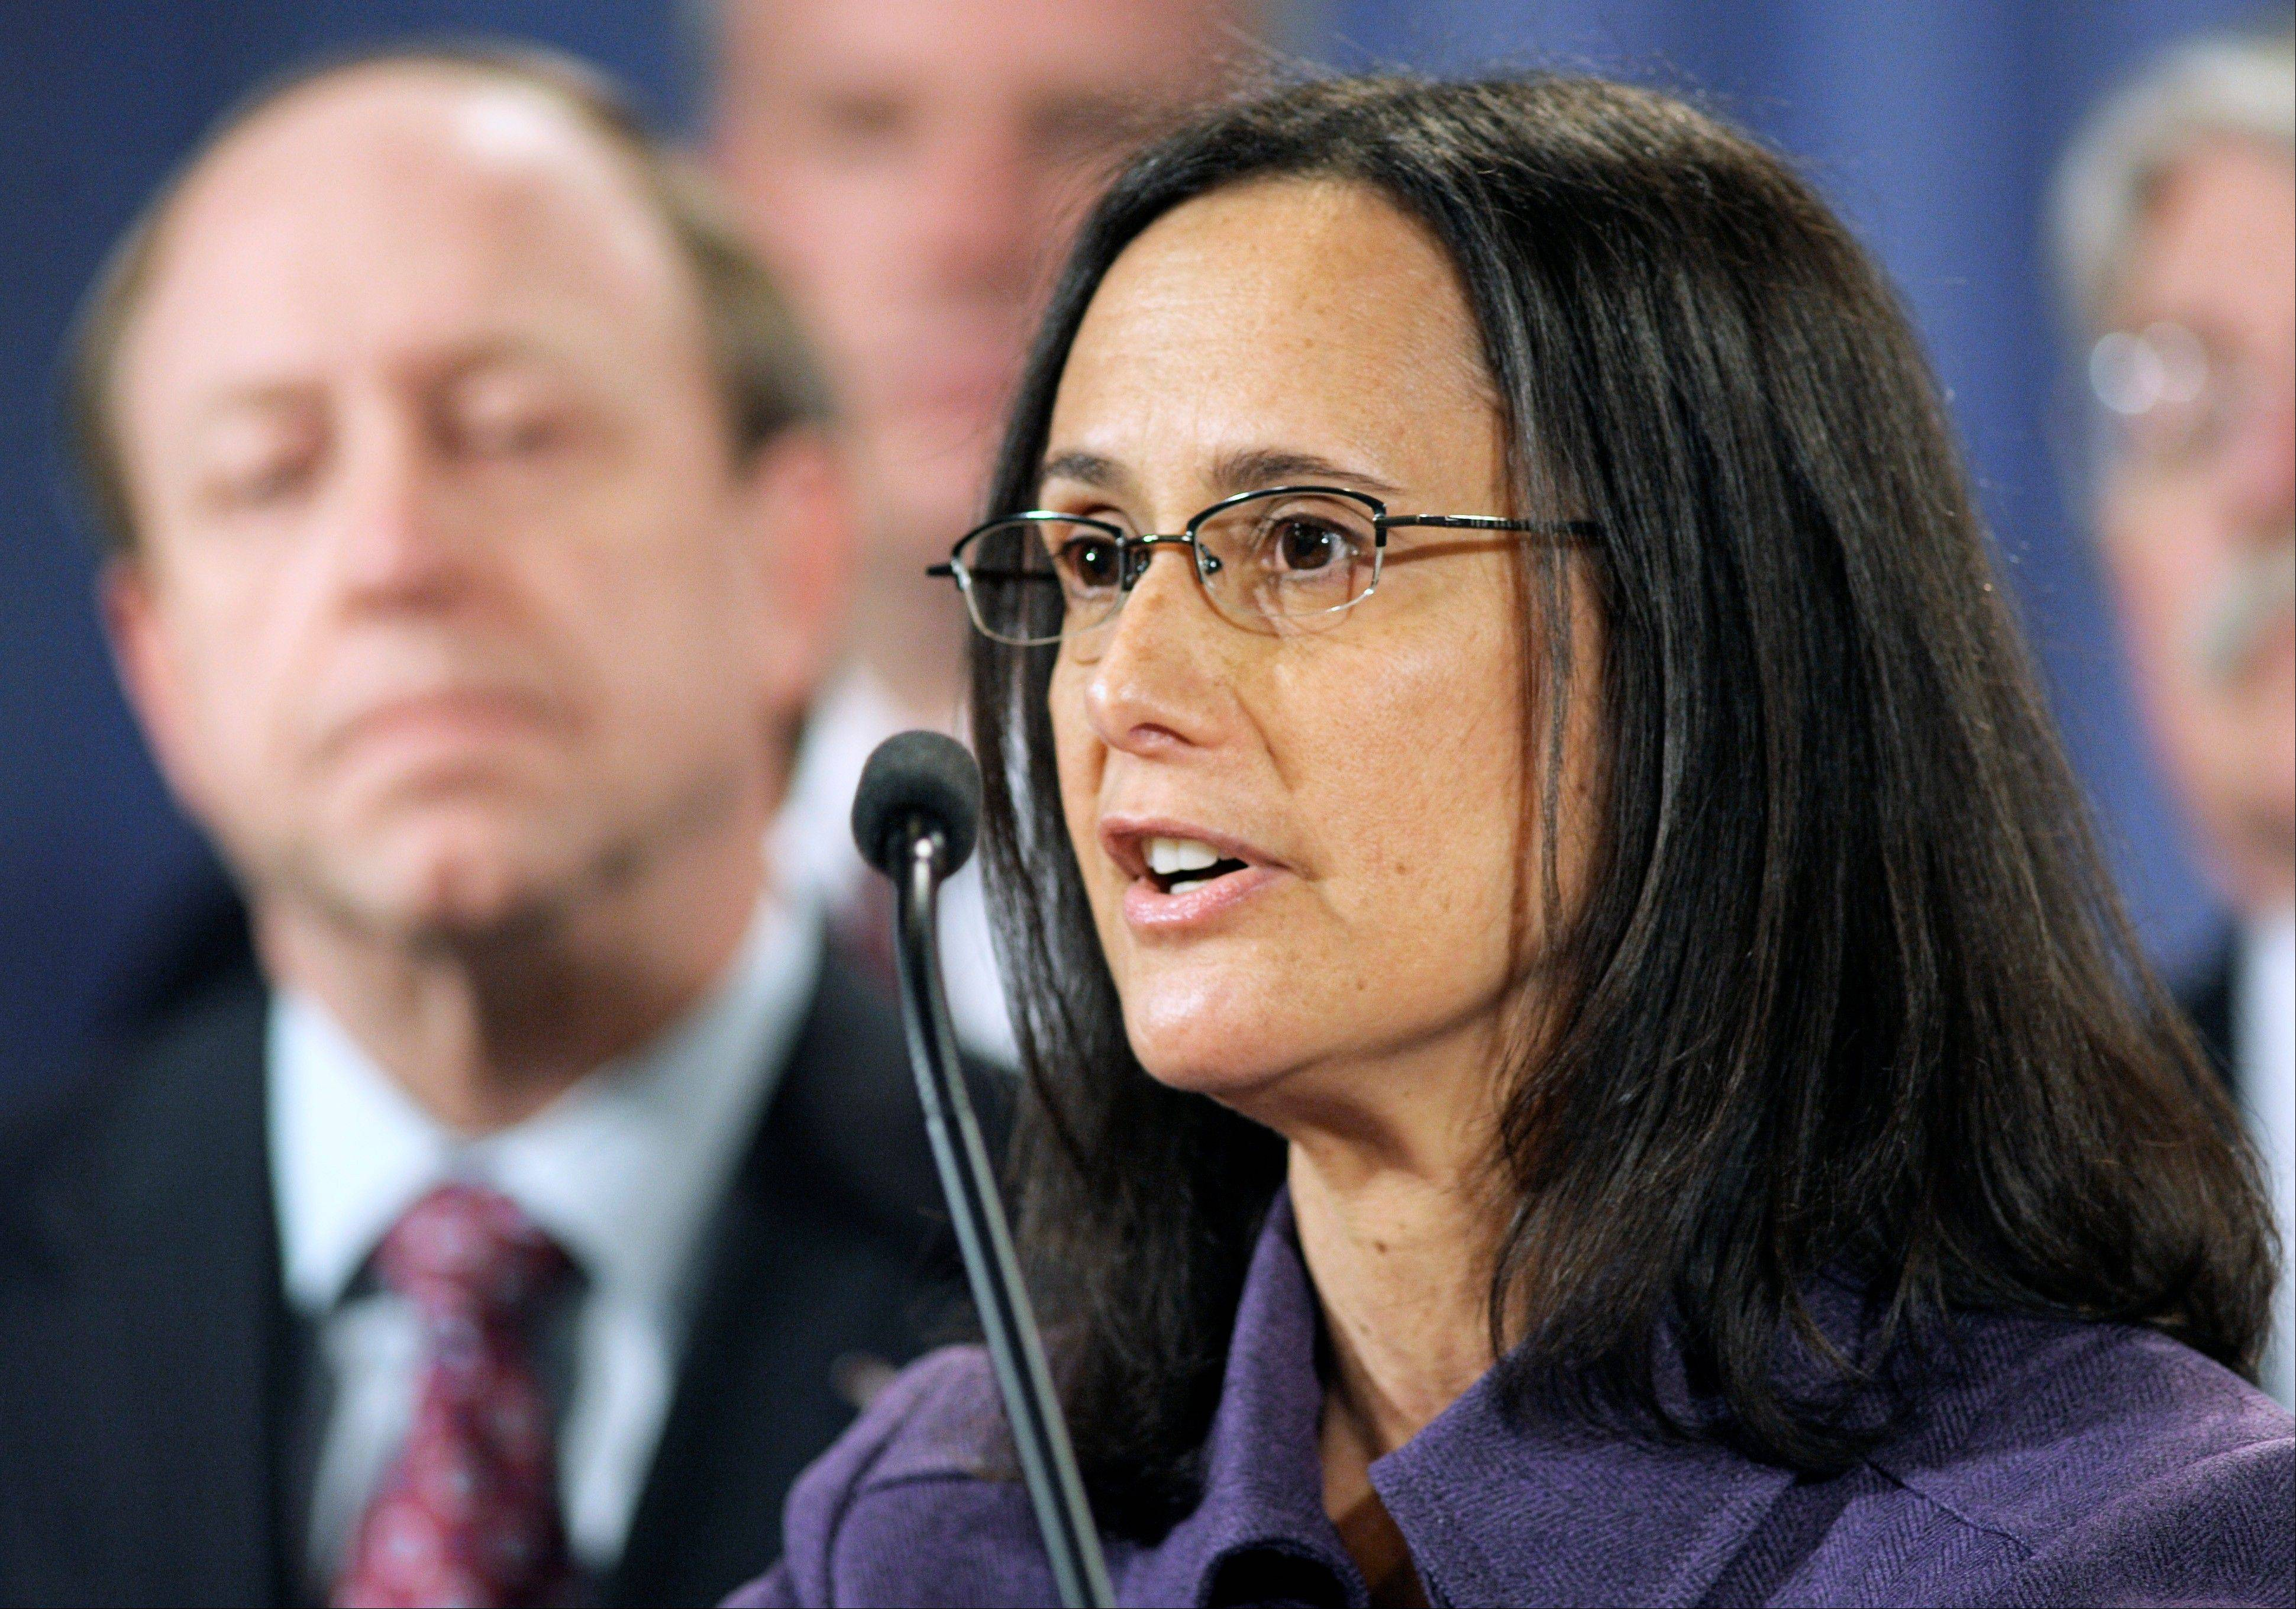 Attorney General Lisa Madigan have refused to defend the suit, claiming the gay marriage ban violates the Illinois Constitution.